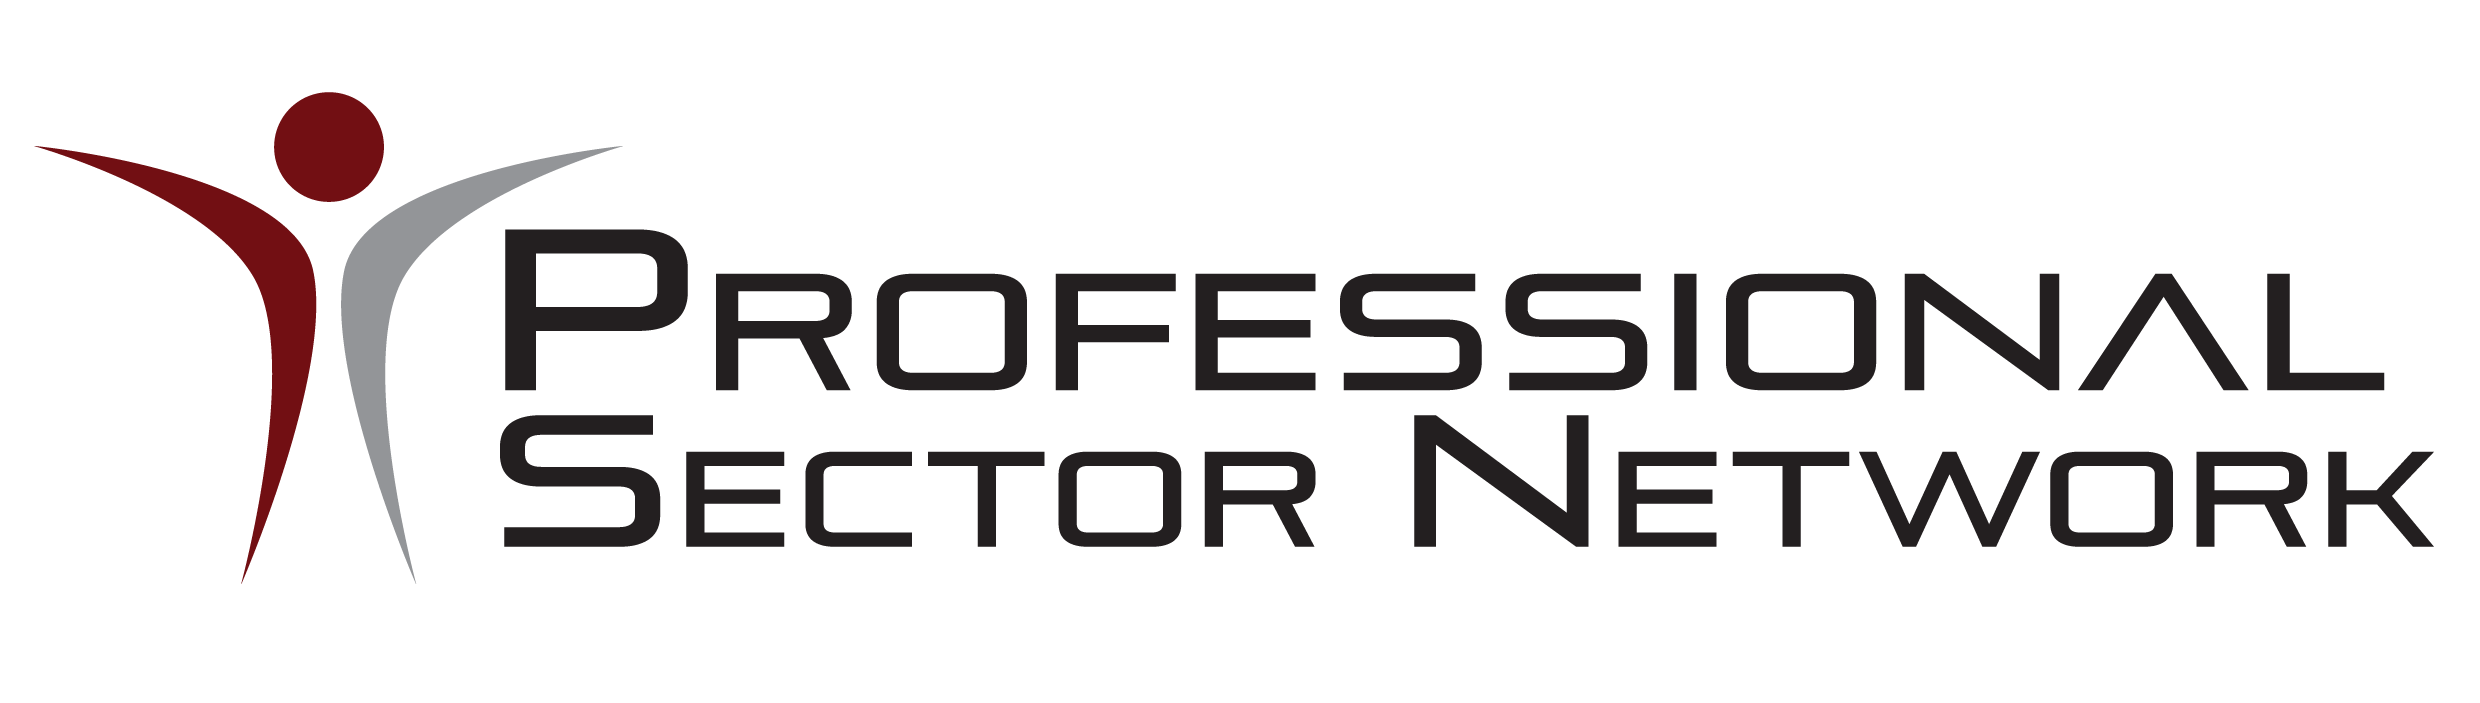 Professional Sector Network